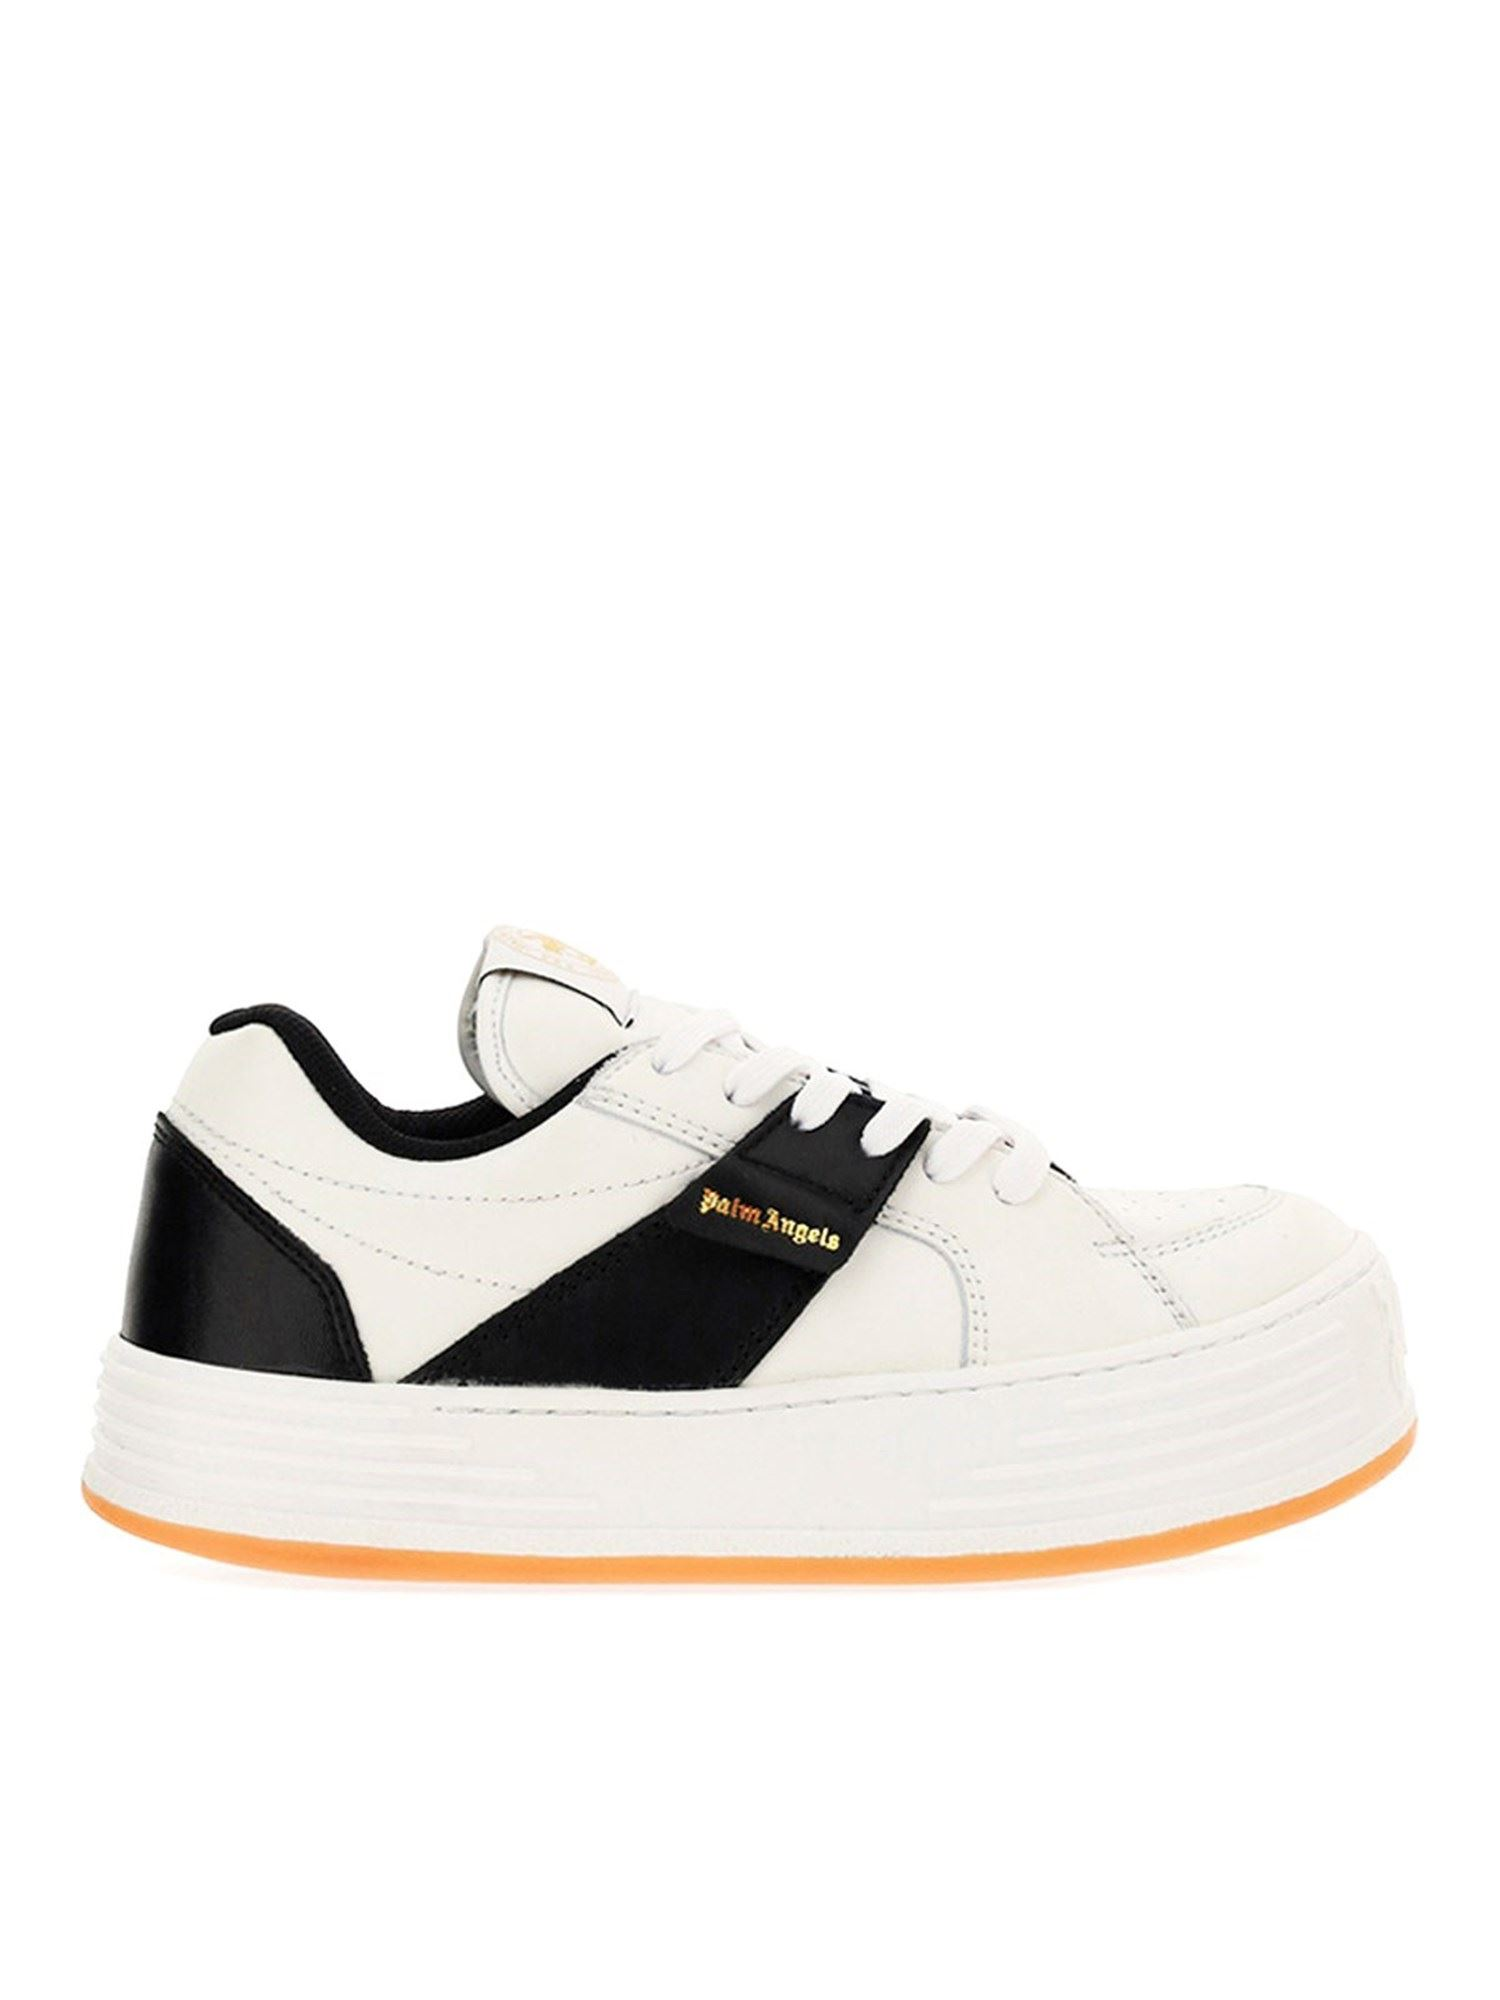 Palm Angels OVERSIZED SOLE CALFSKIN SNEAKERS IN WHITE